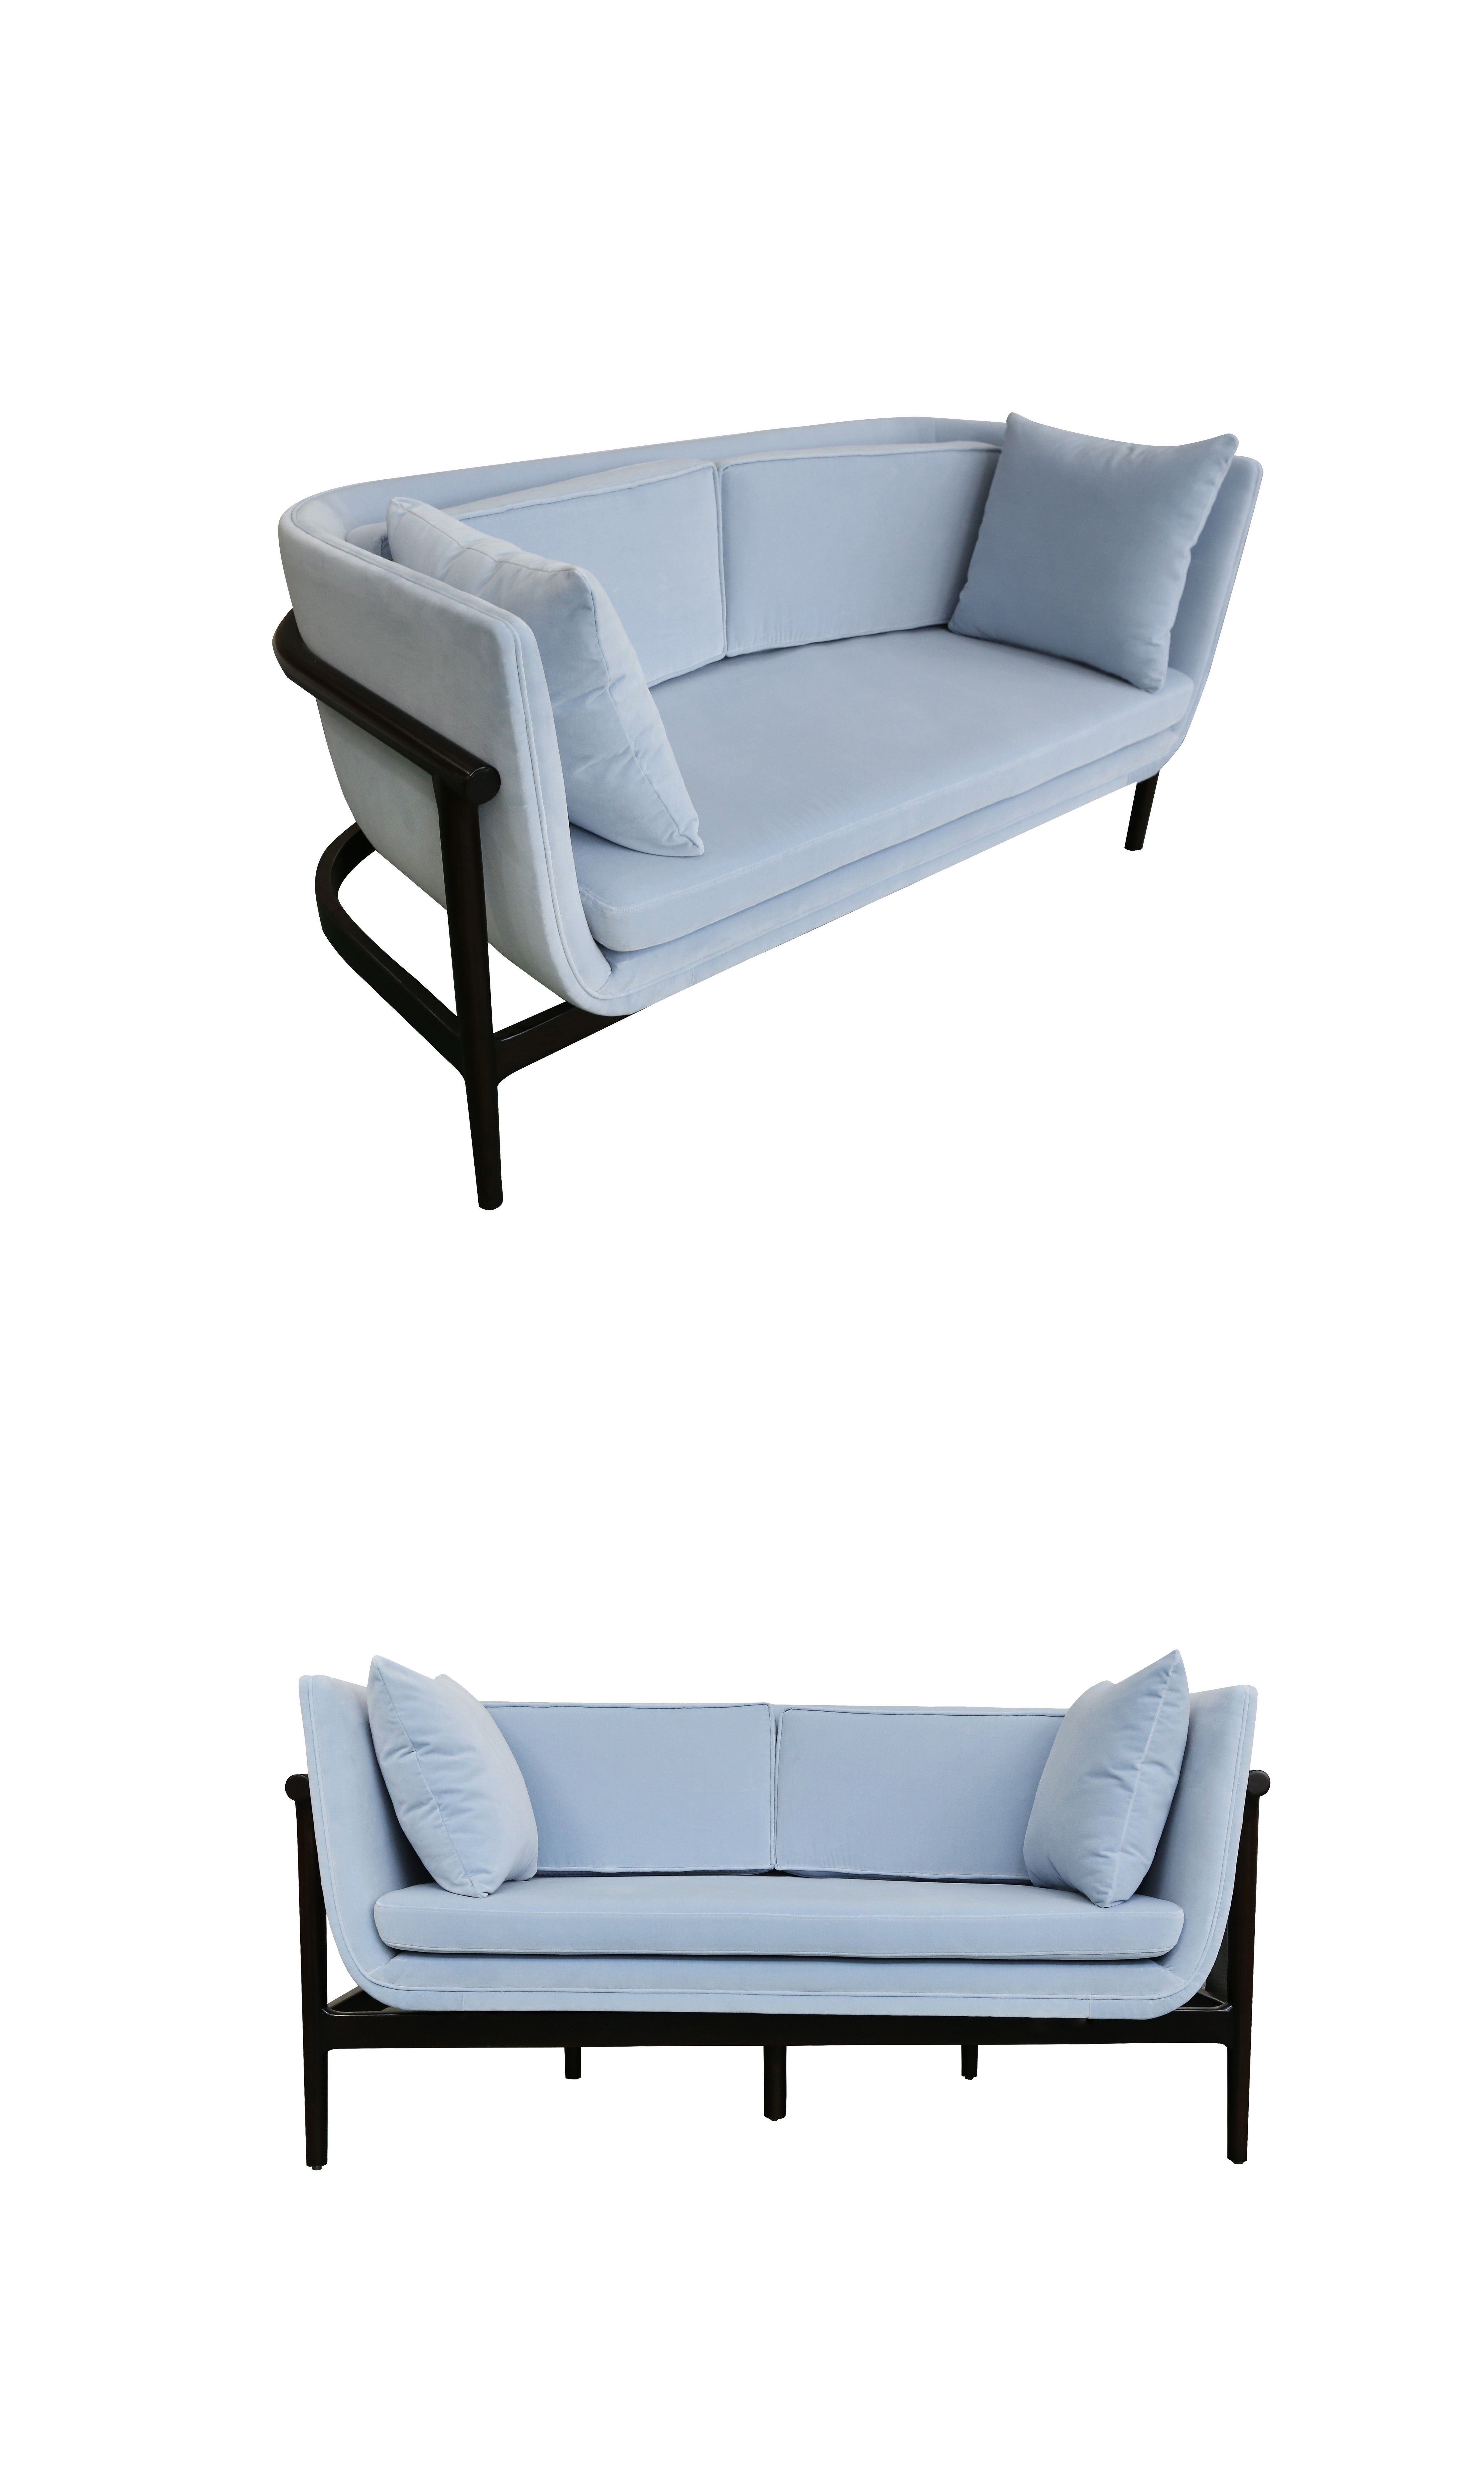 2 Person Chair With Cup Holders Cuddle Couch Home Theater